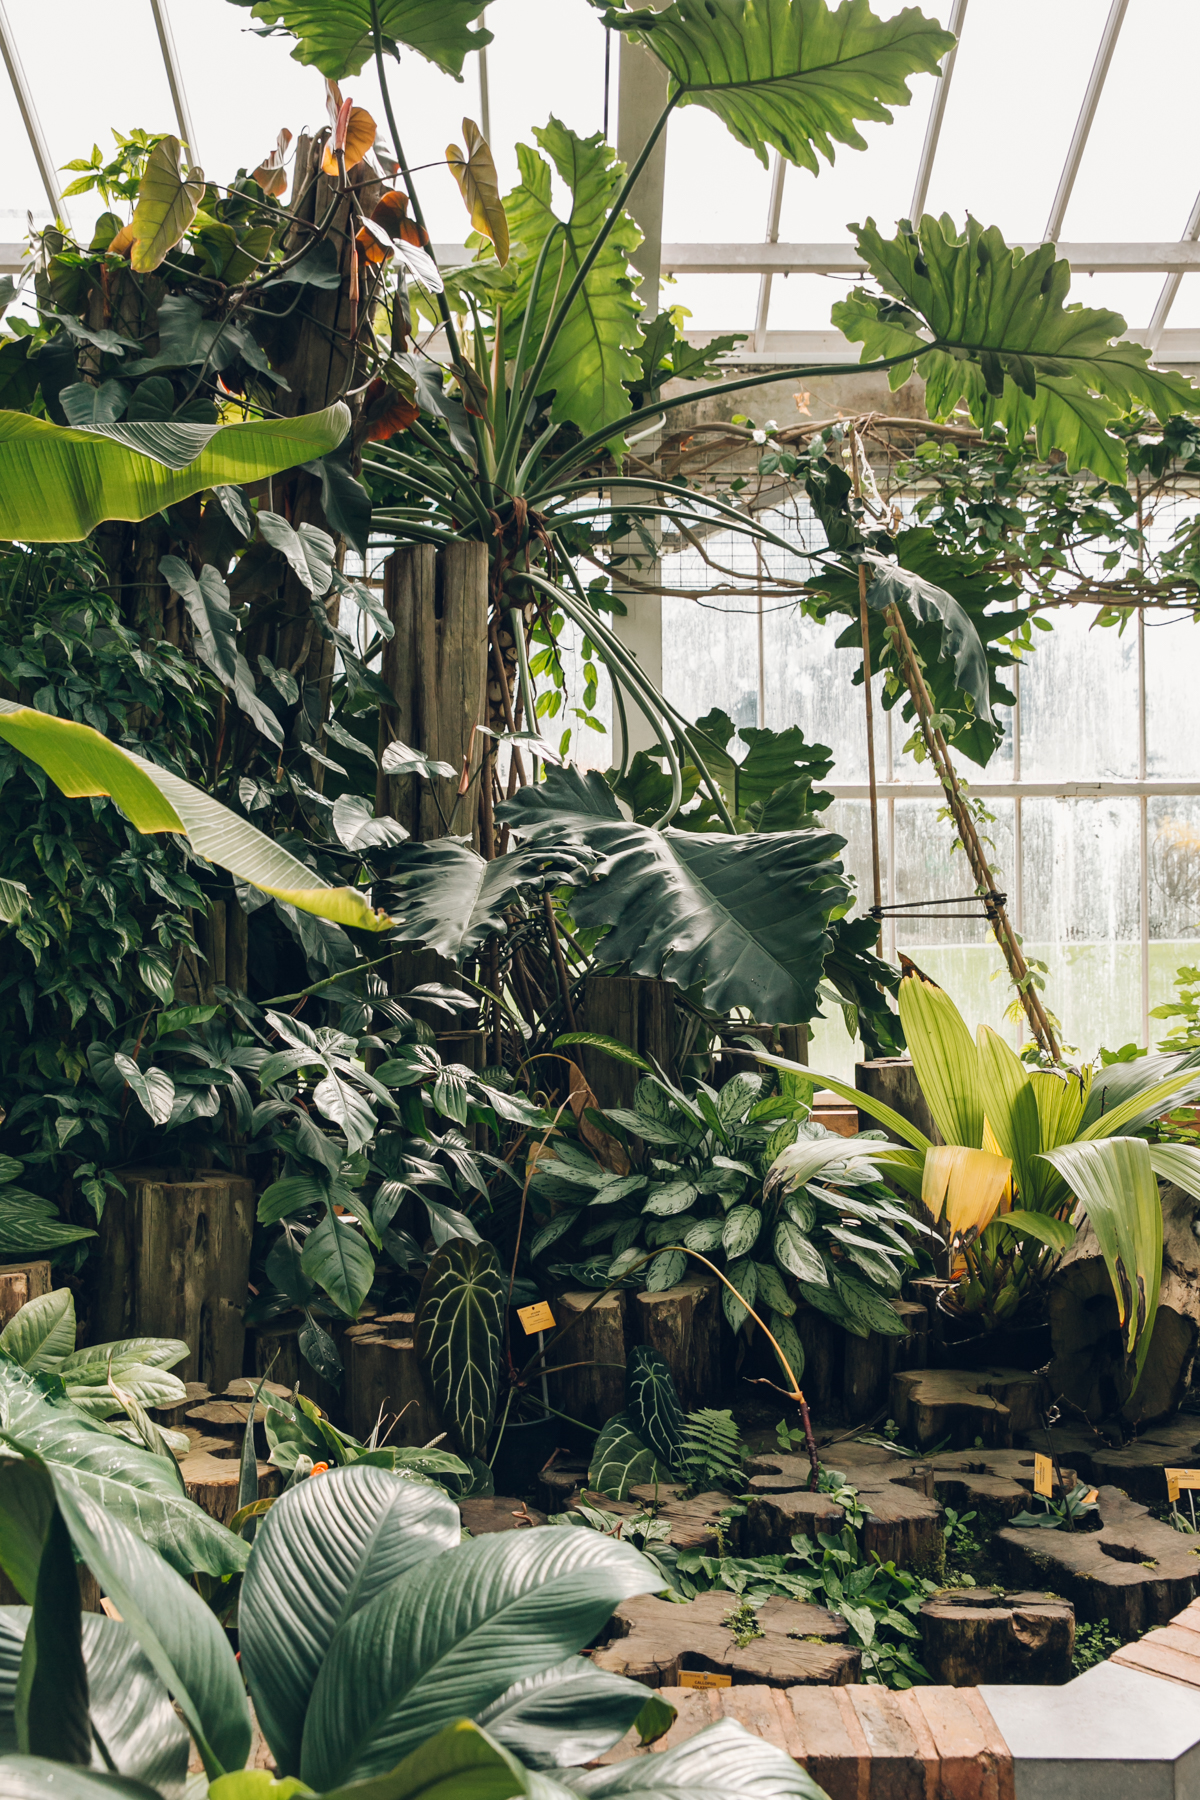 Inside the greenhouses at the Botanic Garden in Meise, Belgium.